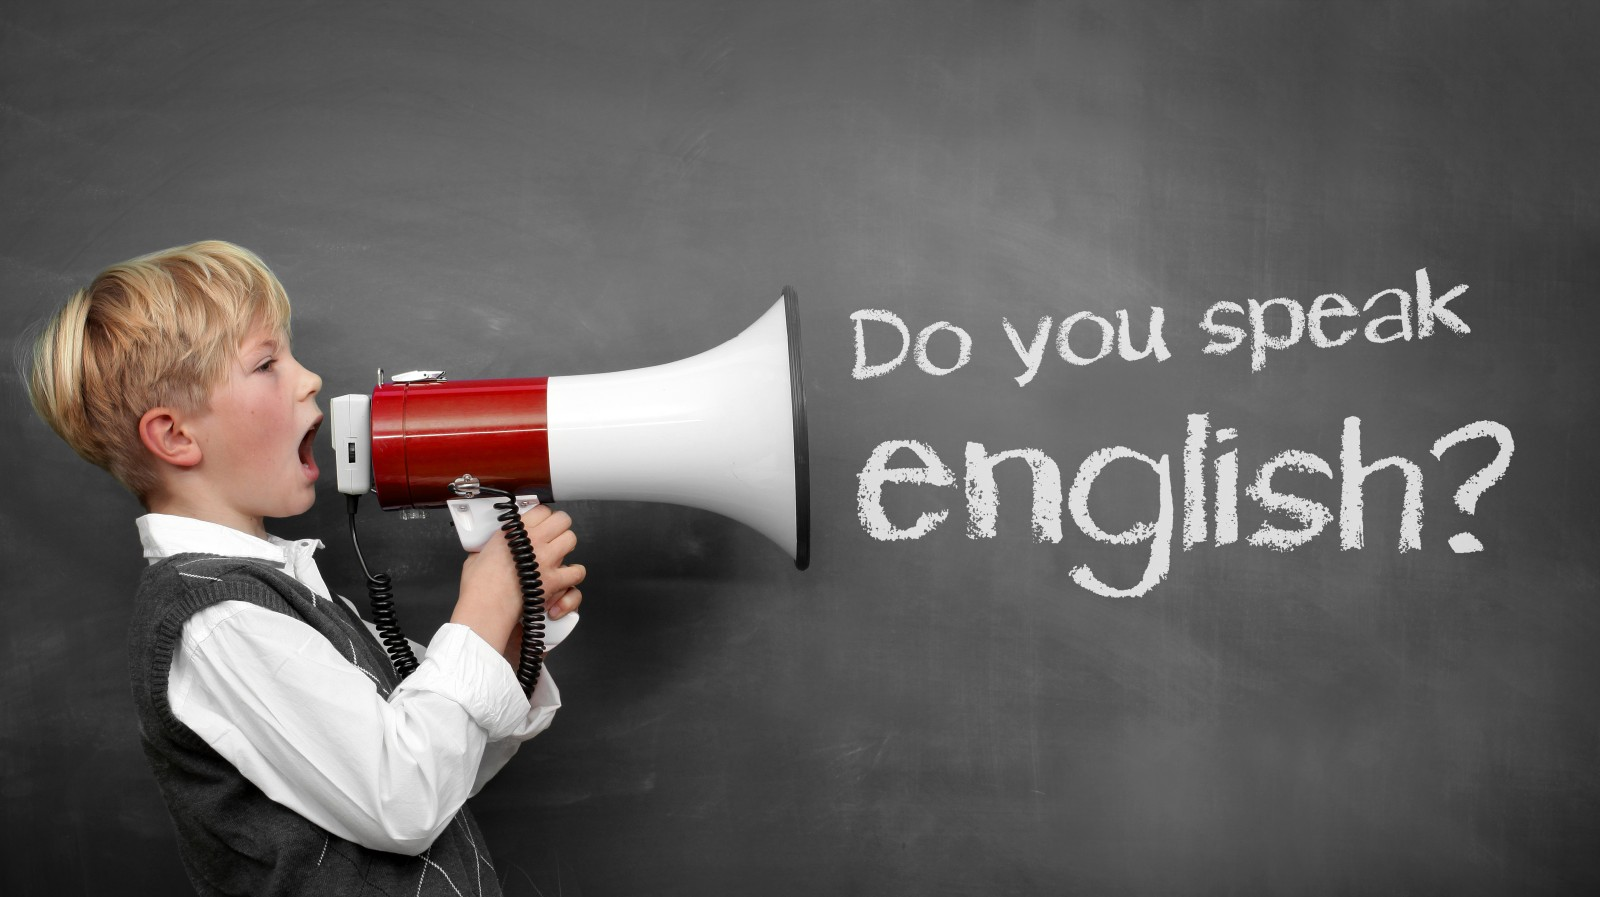 DO YOU SPEAK ENGLISH? IF NOT MUCH! TRY ON NOW